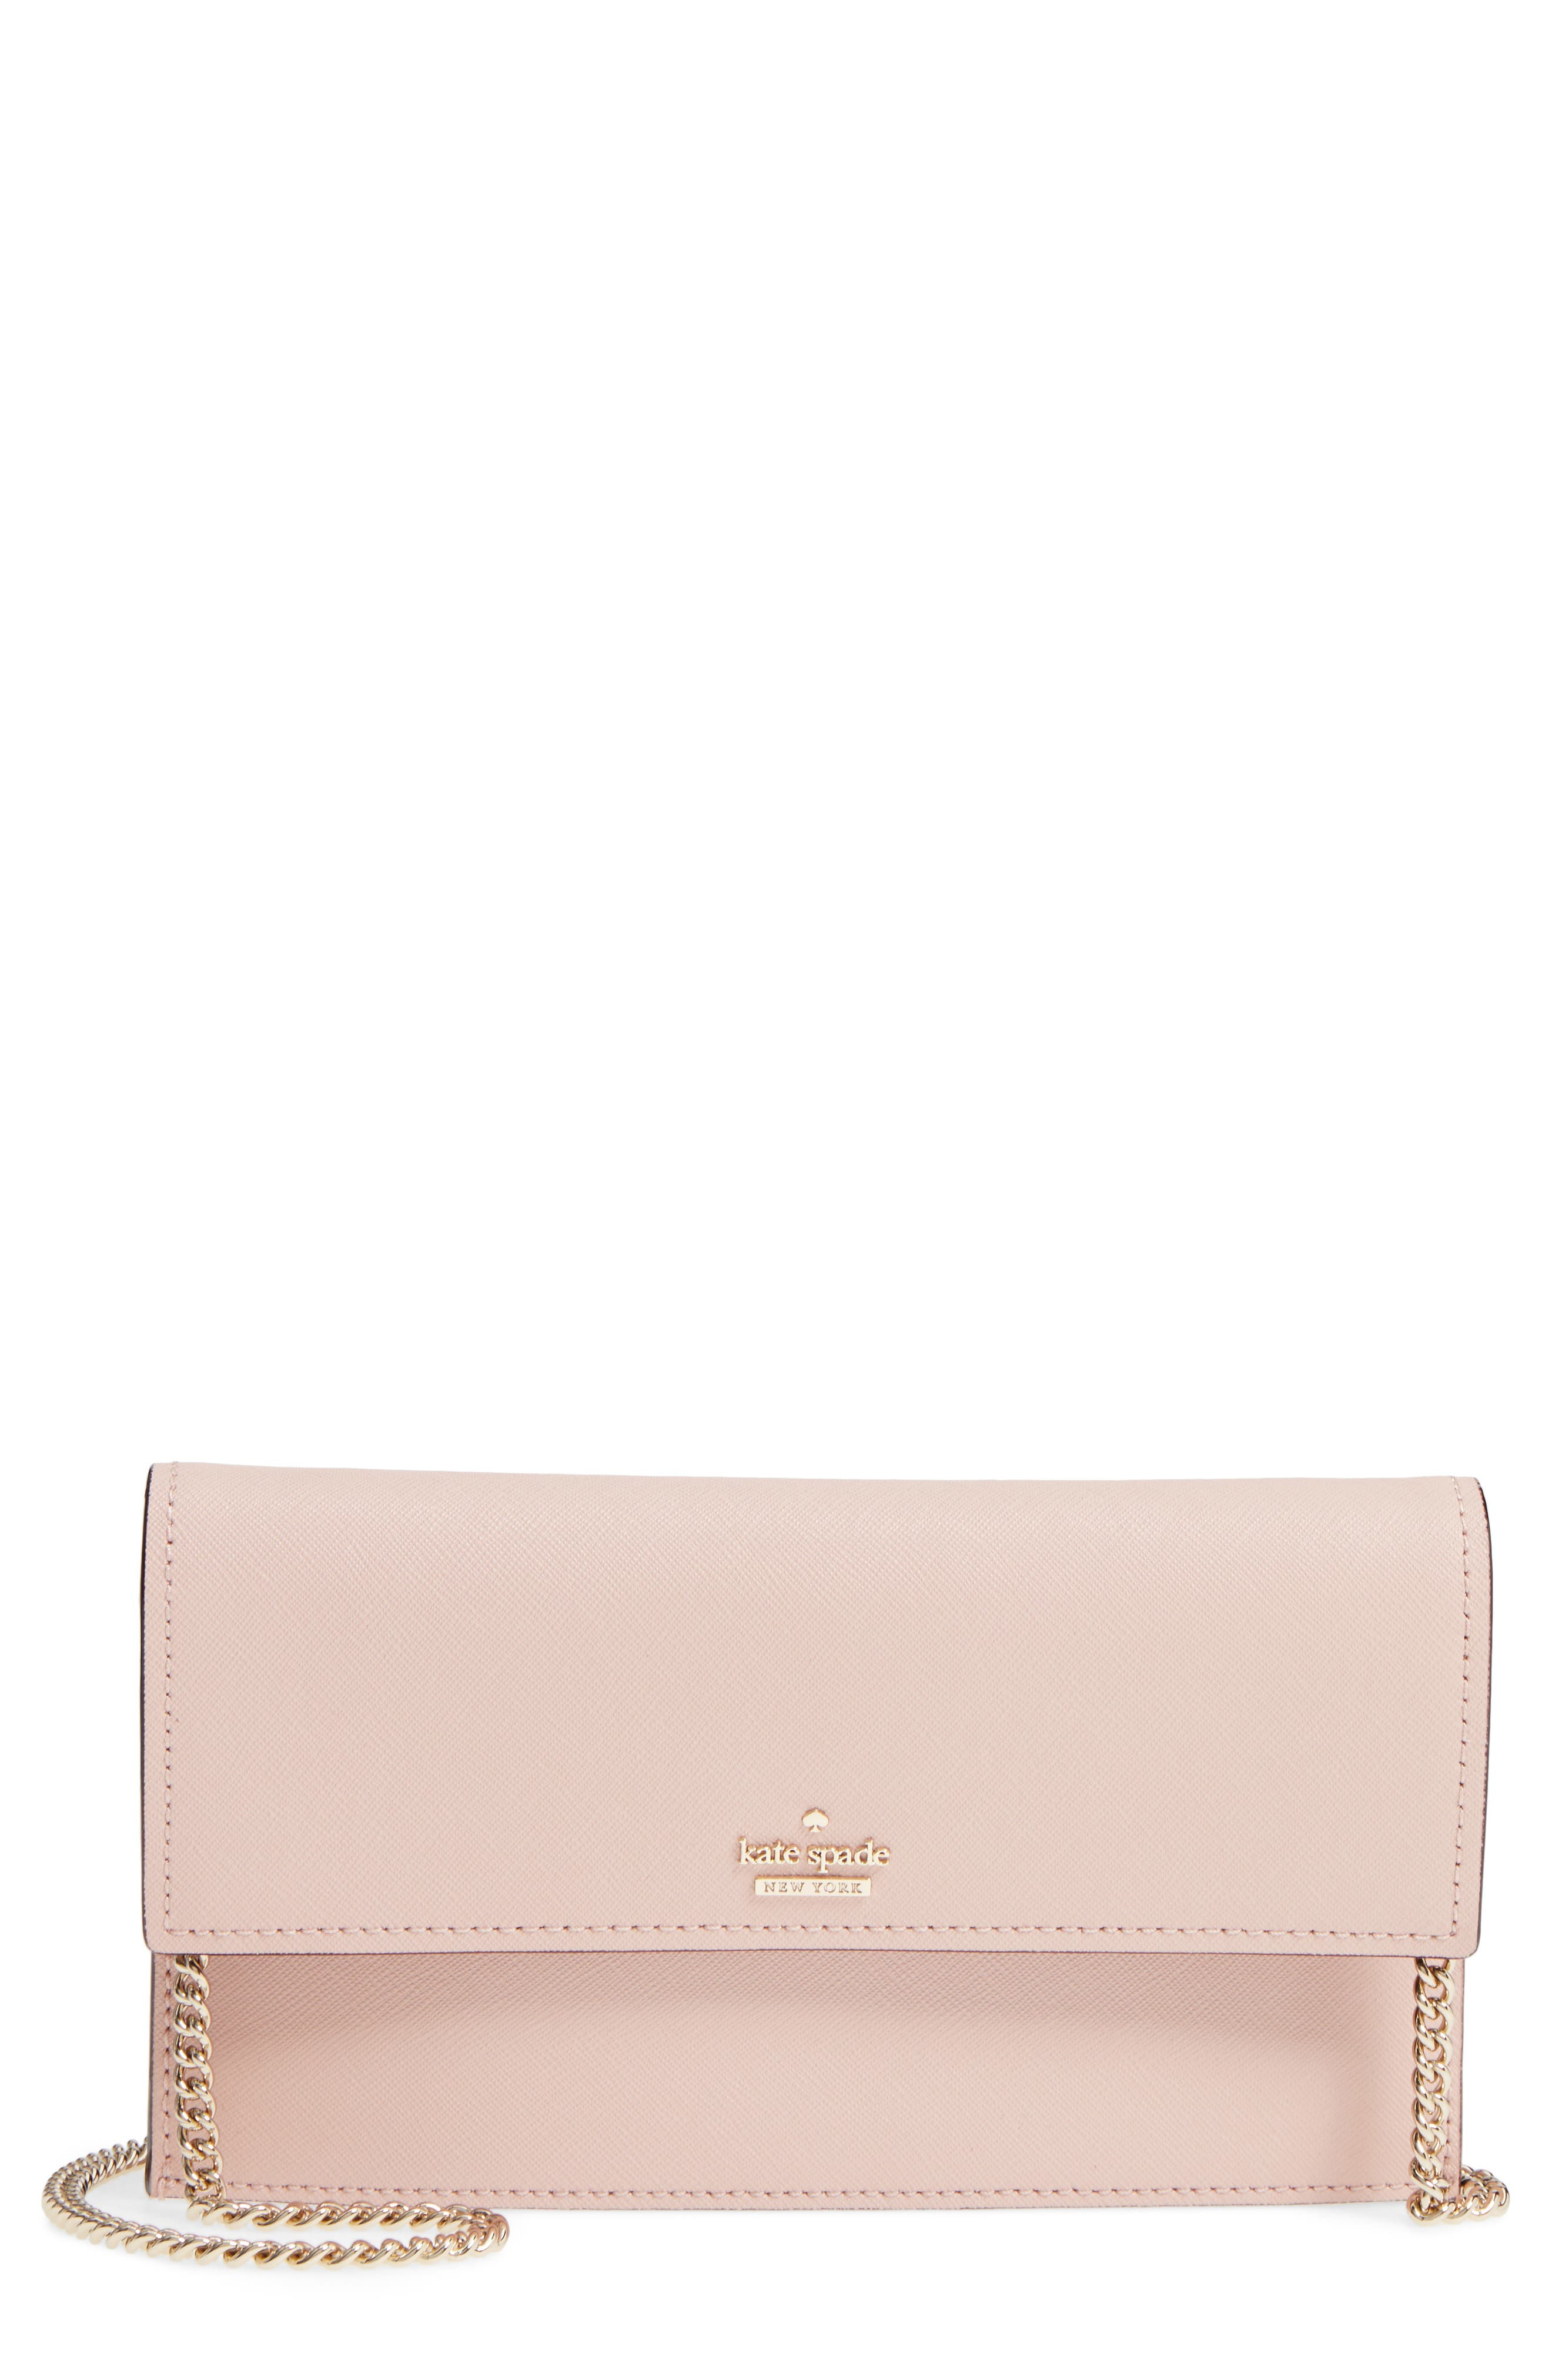 kate spade new york cameron street - brennan leather wallet & card case